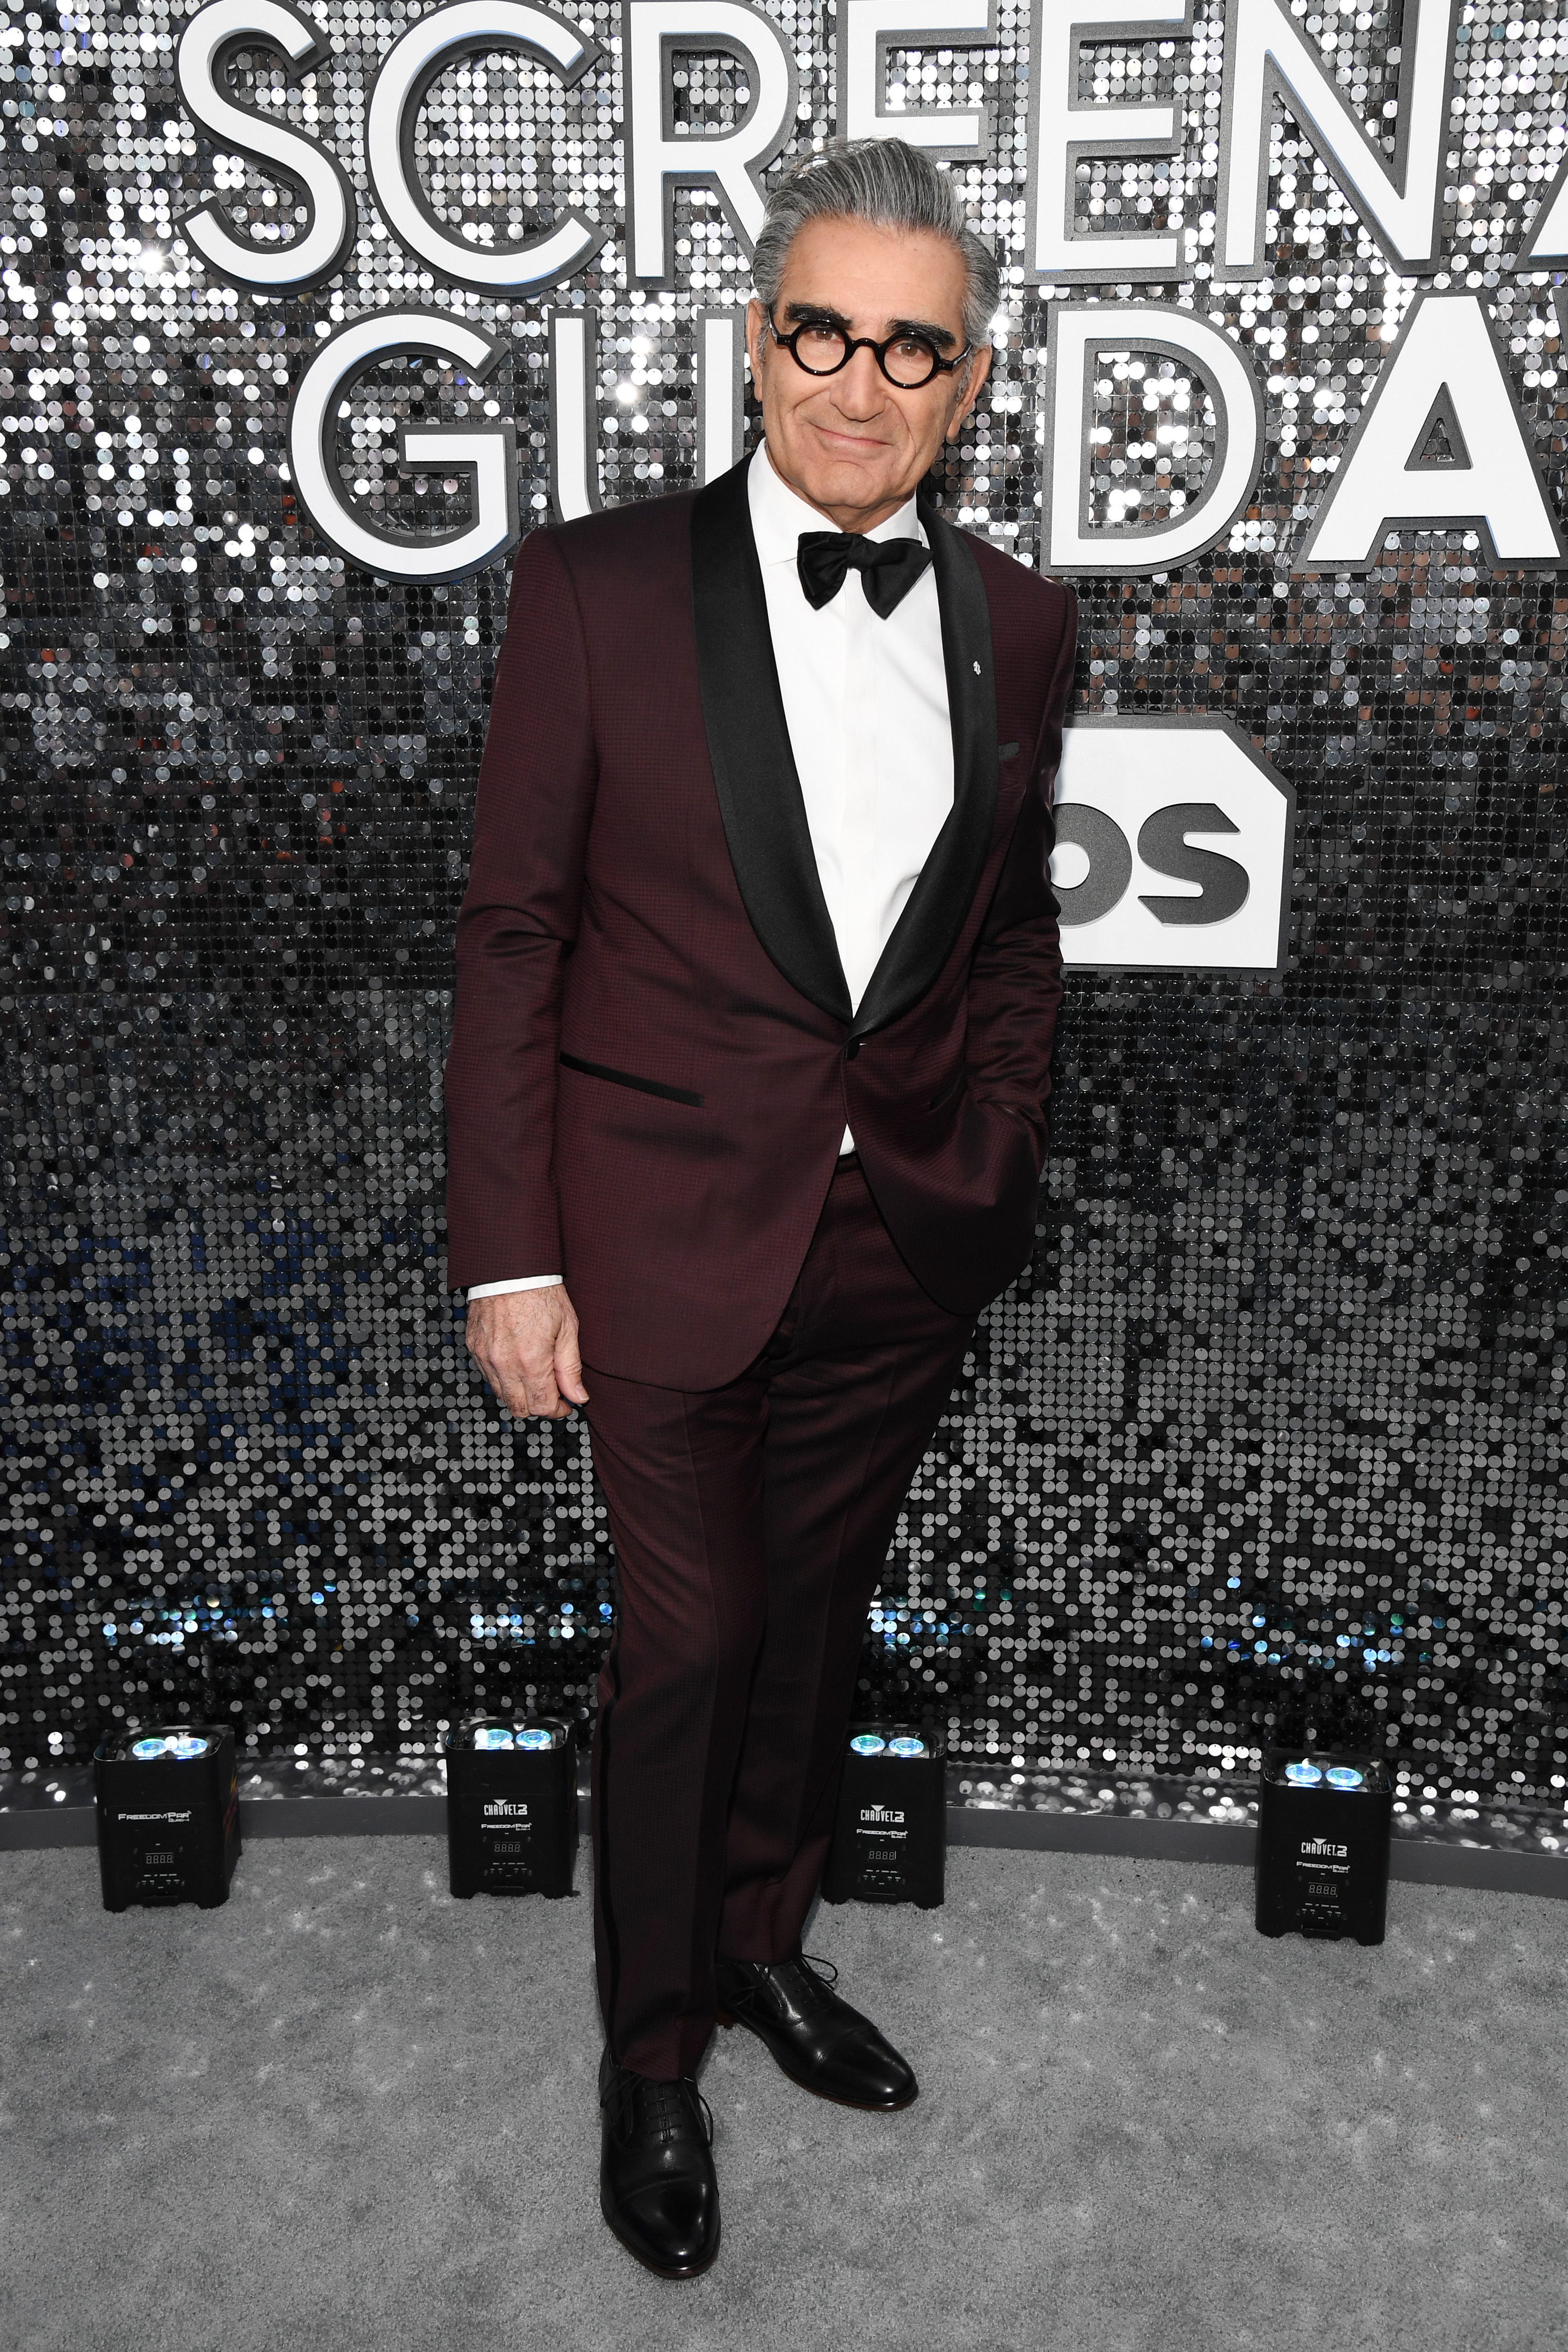 LOS ANGELES, CALIFORNIA - JANUARY 19: Eugene Levy attends the 26th Annual Screen ActorsGuild Awards at The Shrine Auditorium on January 19, 2020 in Los Angeles, California. 721336 (Photo by Kevin Mazur/Getty Images for Turner)